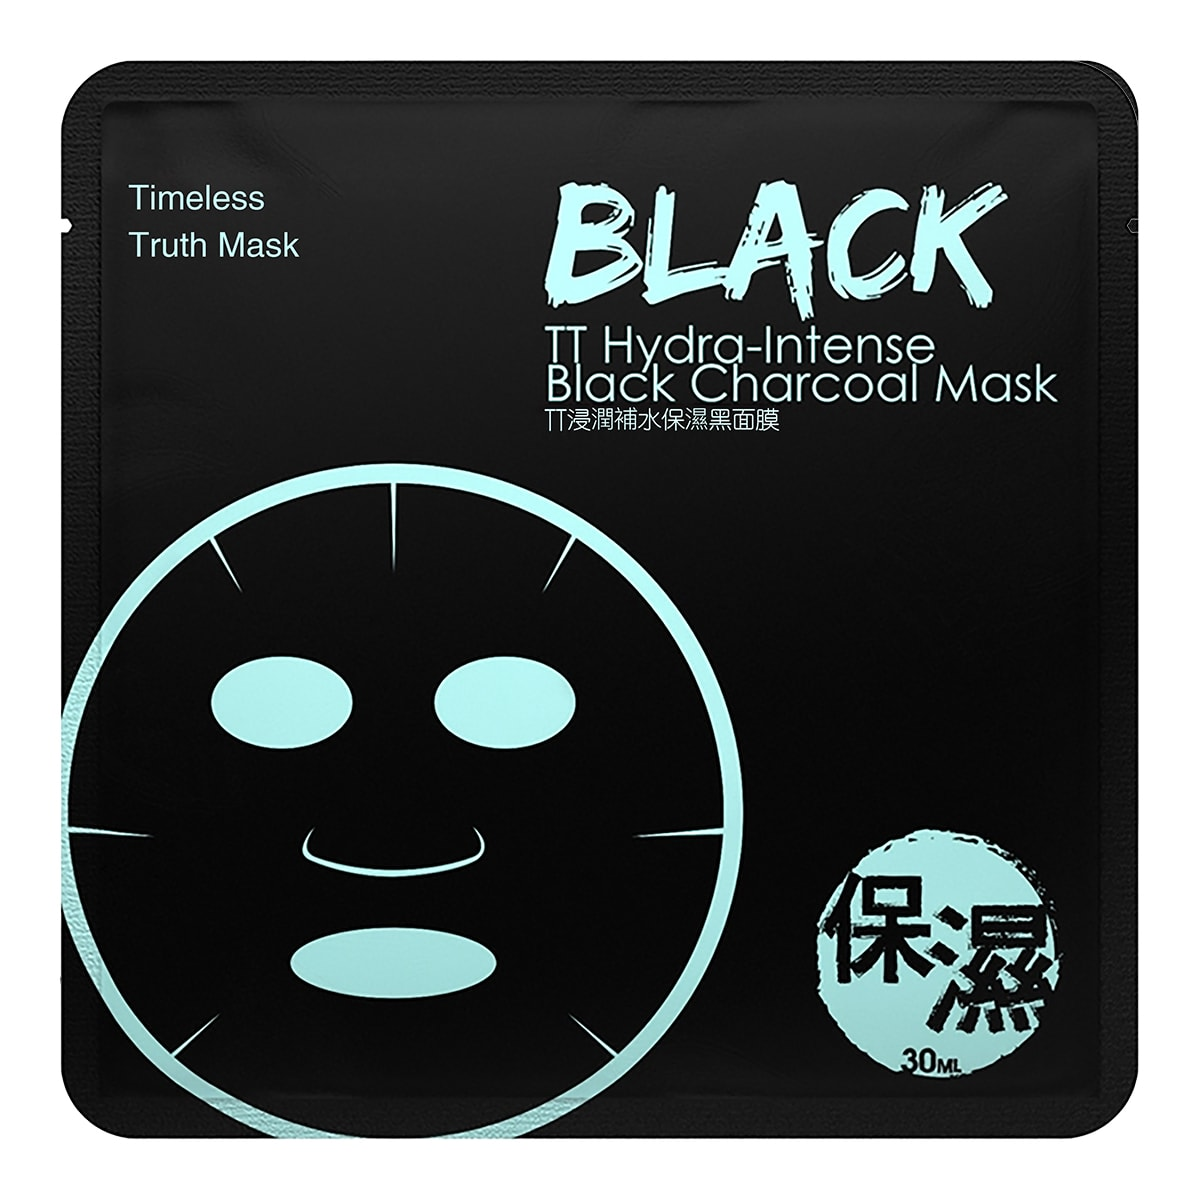 TIMELESS TRUTH MASK Hydra‑Intense Black Charcoal Mask 1pc